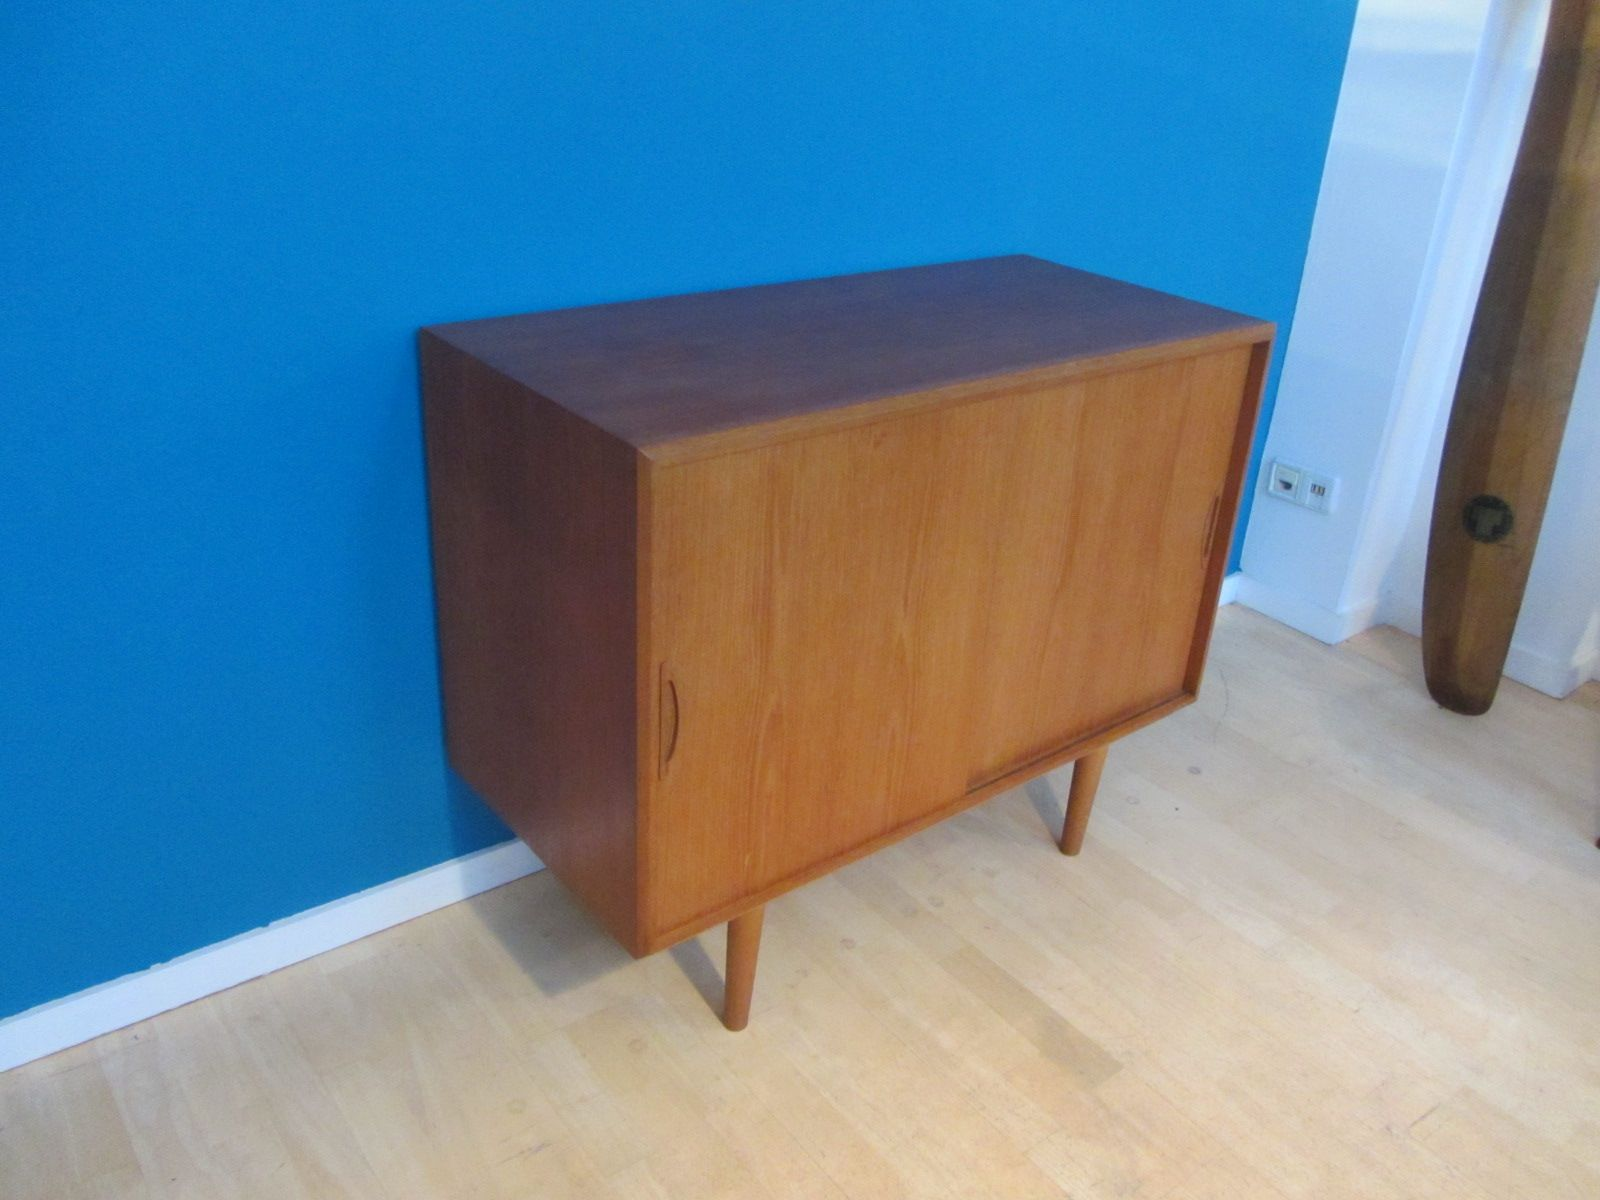 kleines d nisches mid century teak sideboard mit schiebet ren bei pamono kaufen. Black Bedroom Furniture Sets. Home Design Ideas